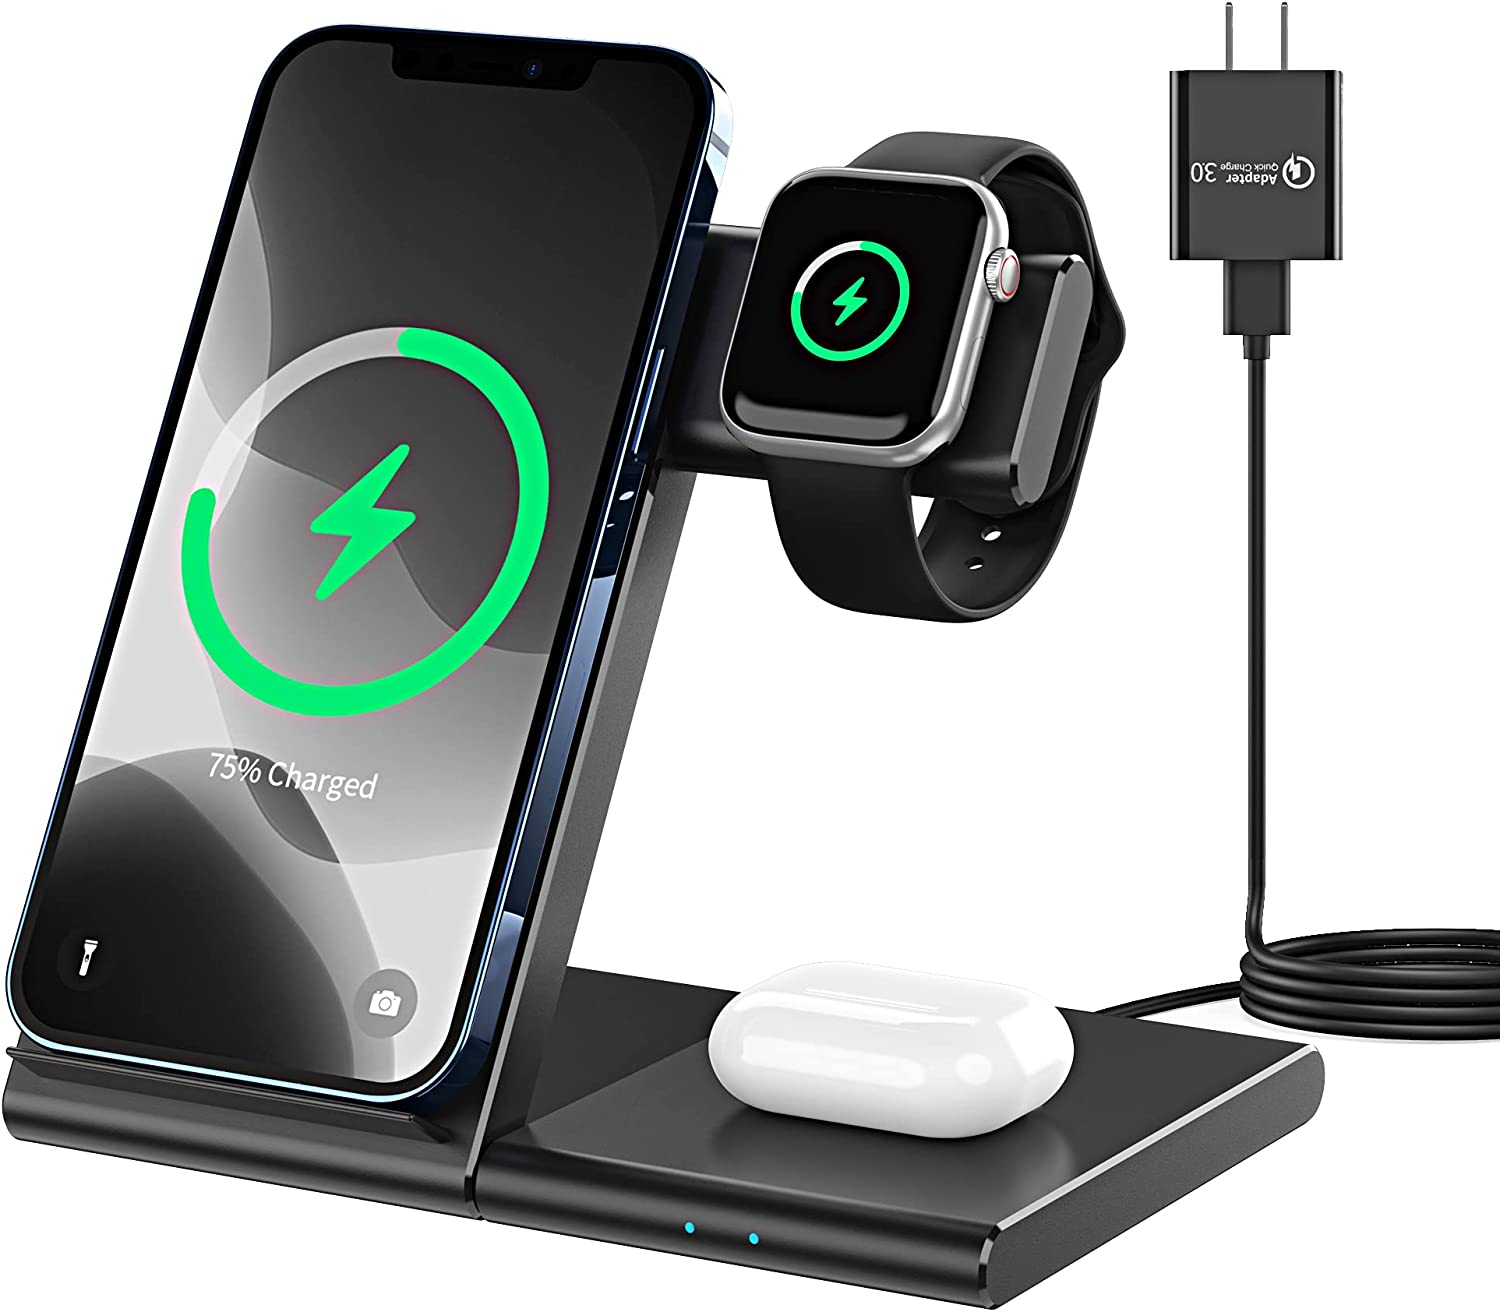 Apetiy 3 in 1 Wireless Charging Station for Apple Watch Series Se 6 5 4 3 2 AirPods Pro 2 Qi Fast Charger Stand for iPhone 12 Pro Max 11 XR XS X 8 Plus Charging Stand Dock Wireless Charger for Samsung